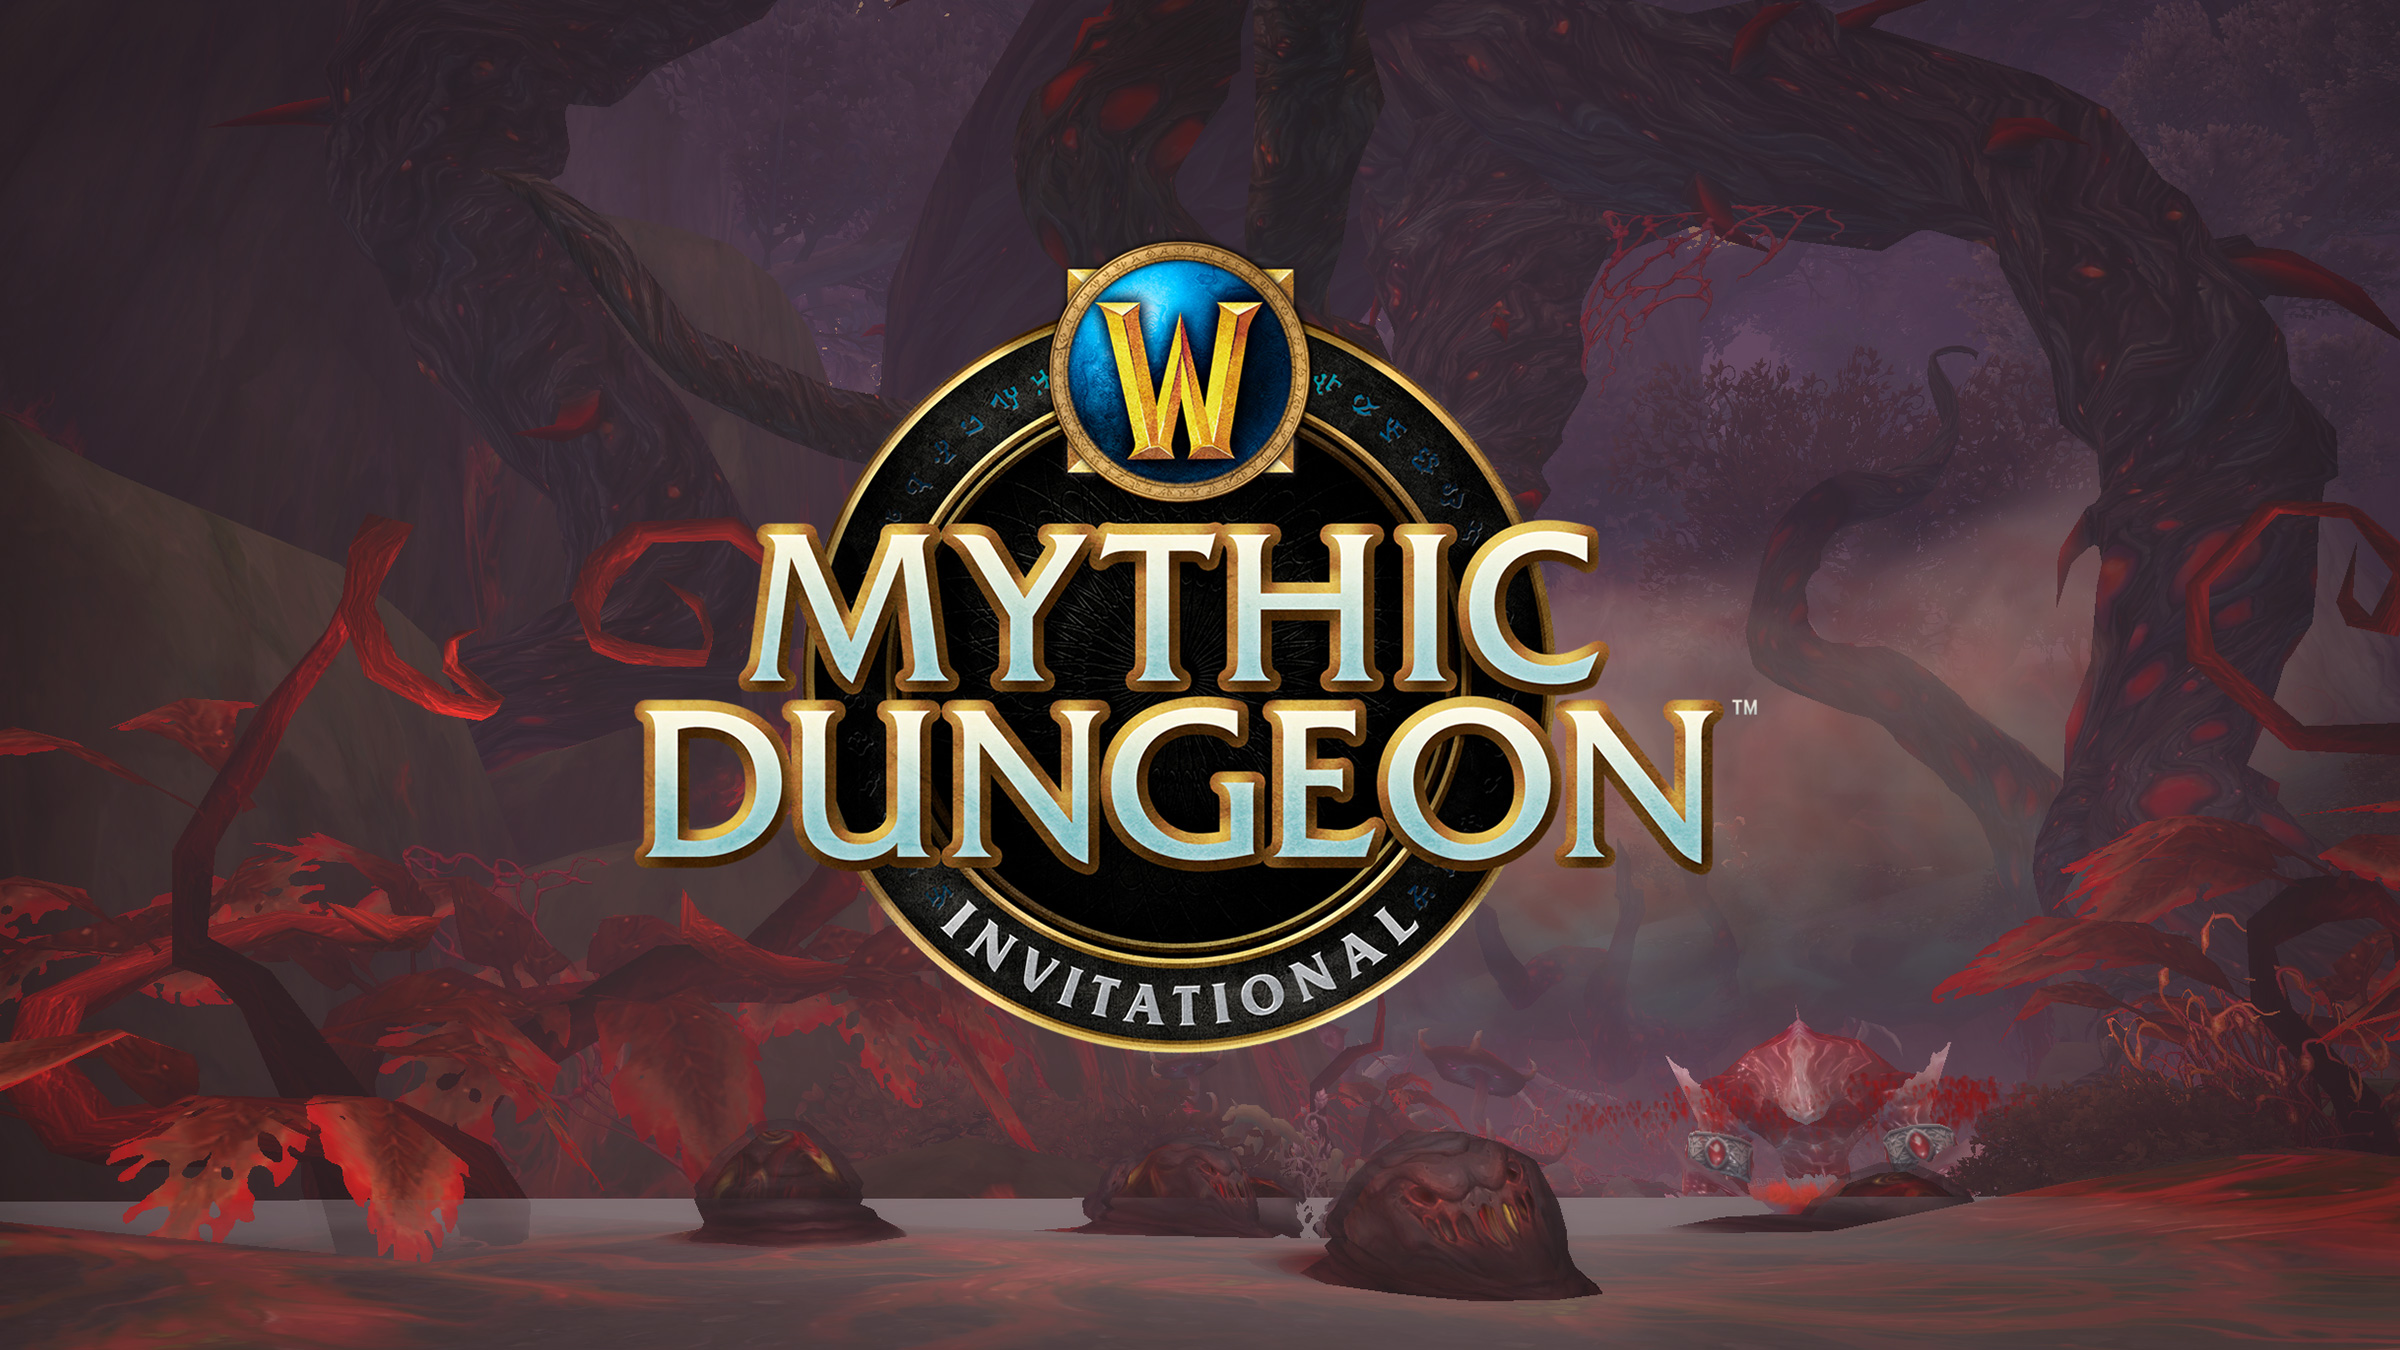 The Mythic Dungeon Invitational Is Back: Get Ready for the Proving Grounds